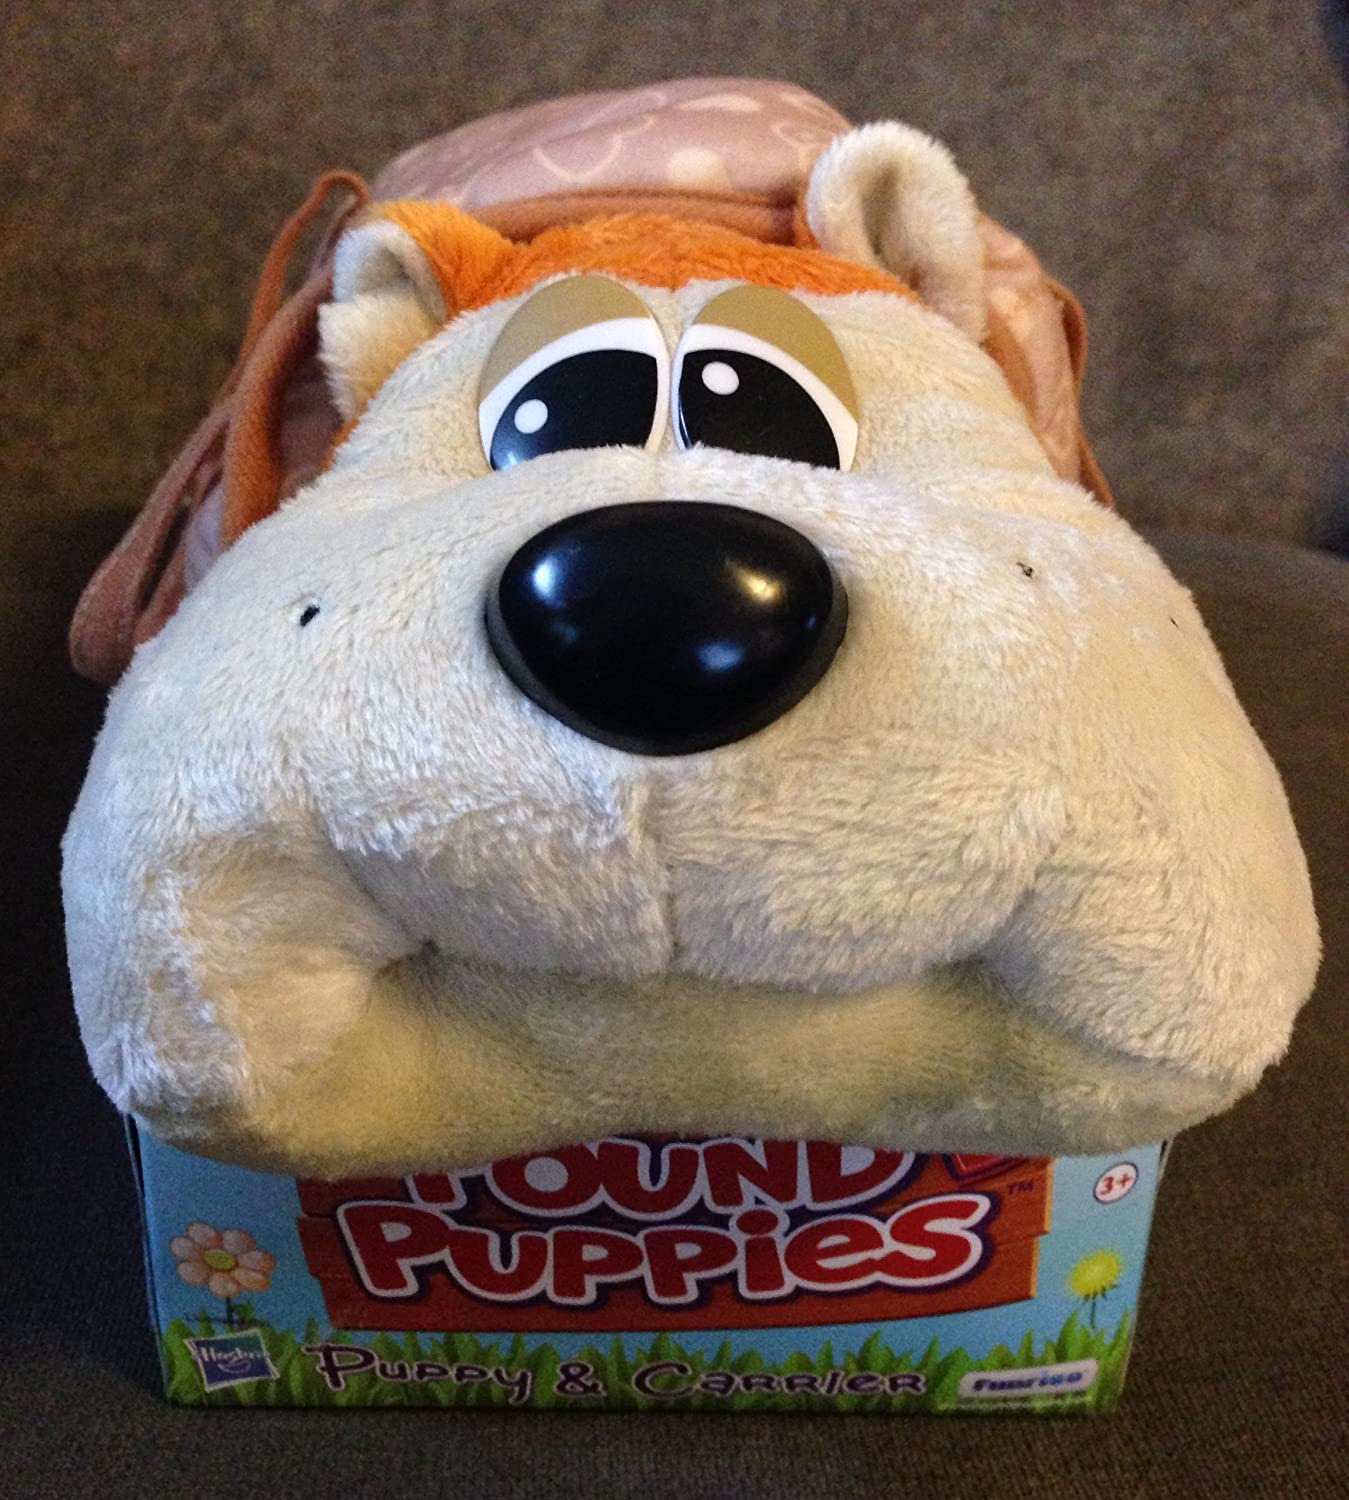 Amazon Pound Puppies Puppy & Carrier Shiba Inu Toys & Games